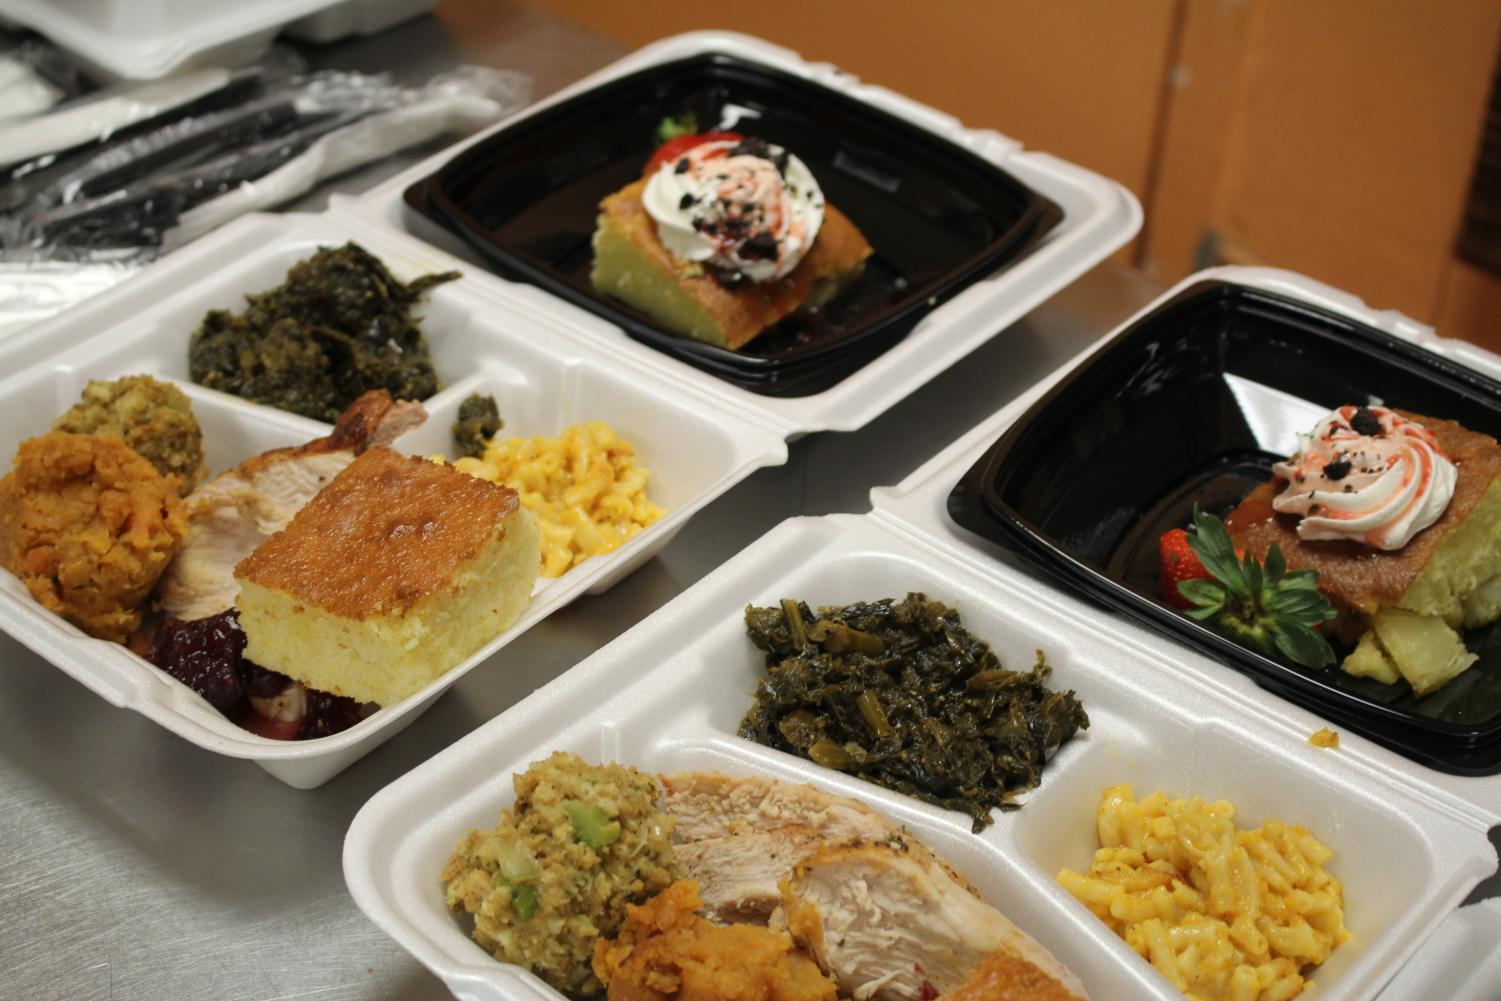 THANK YOU: For today's teacher lunches the Culinary Academy students did a Thanksgiving theme. The meal consisted of turkey topped off with cranberry sauce, baked mac-&-cheese, stuffing, cornbread, collard greens and yams. For dessert the kids did a spin-off on tradition. Instead of your ordinary pumpkin pie, dessert was a strawberry shortcake with a sweet surprise on the bottom.